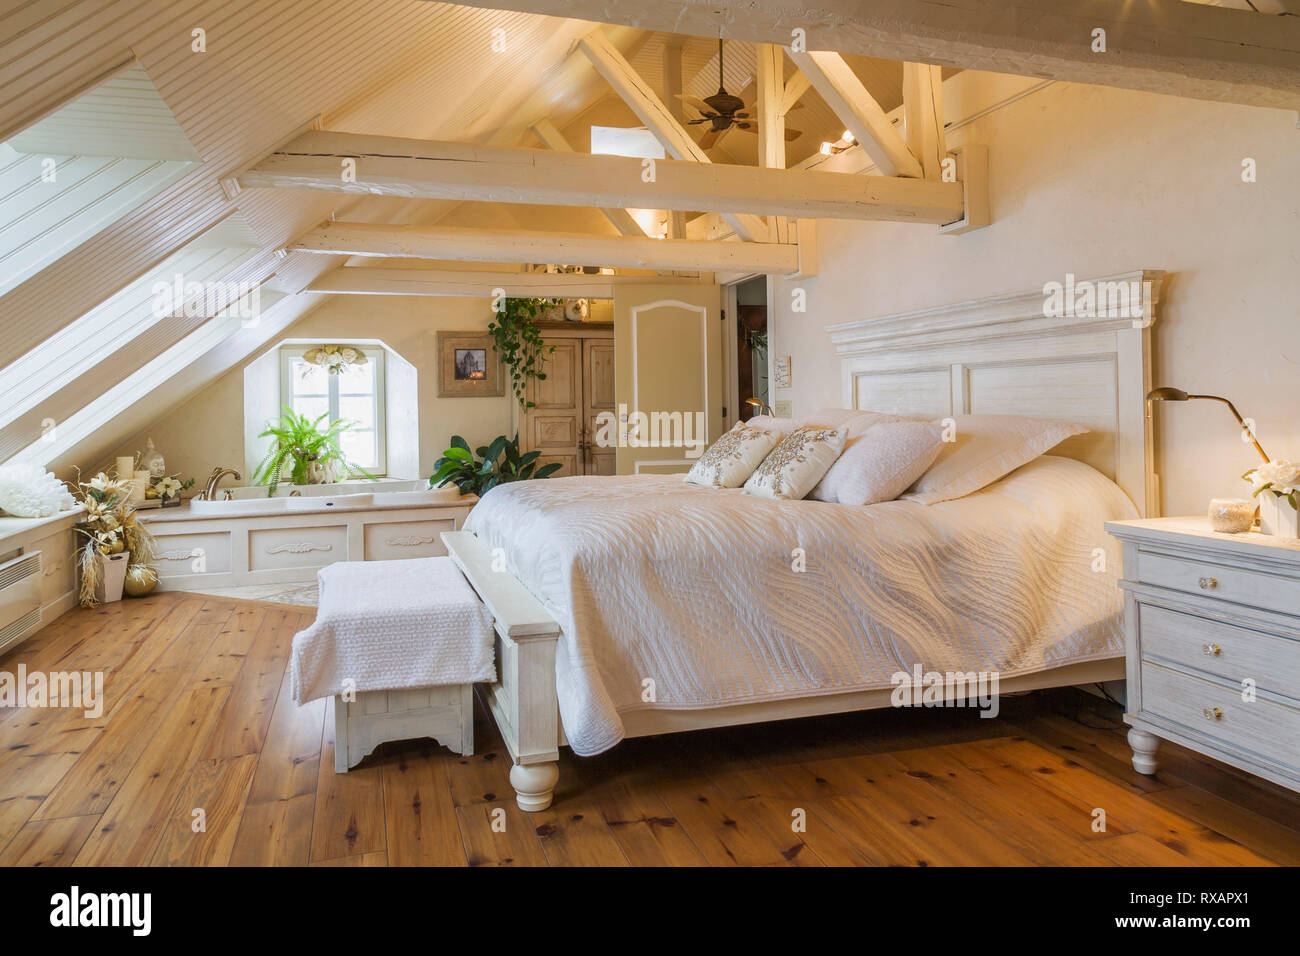 King size antique wooden bed in master bedroom in the attic of an ...